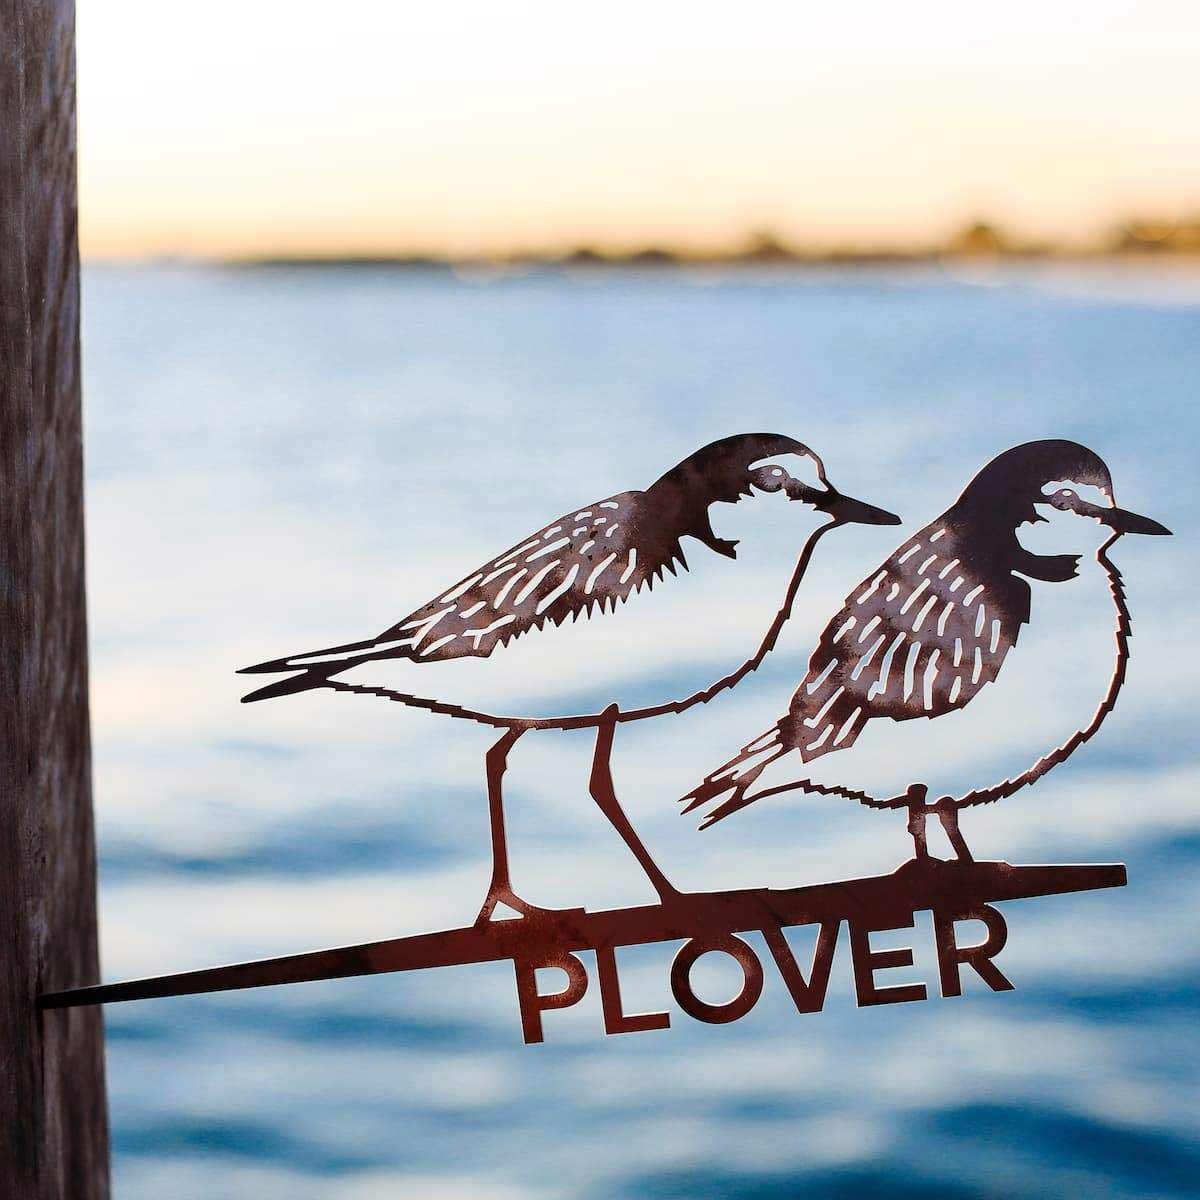 Plover Metalbird Corten Bird Silhouettes | The Design Gift Shop